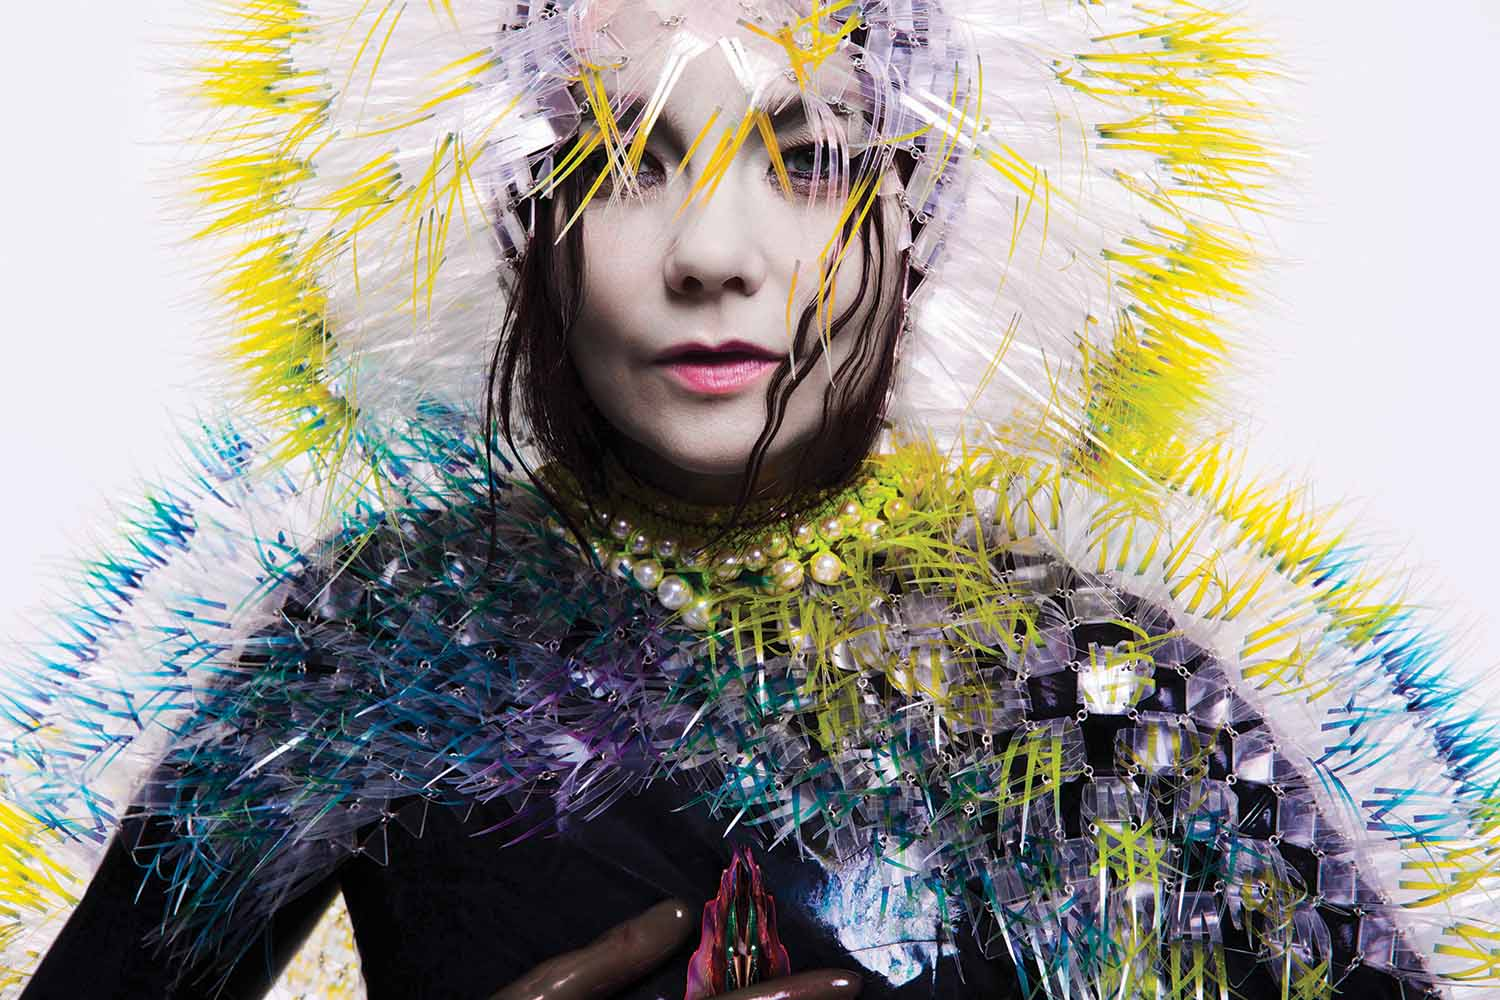 Artwork for the Vulnicura album, by M/M Paris with portrait by Inez Van Lamsweerde and Vinoodh Matadin